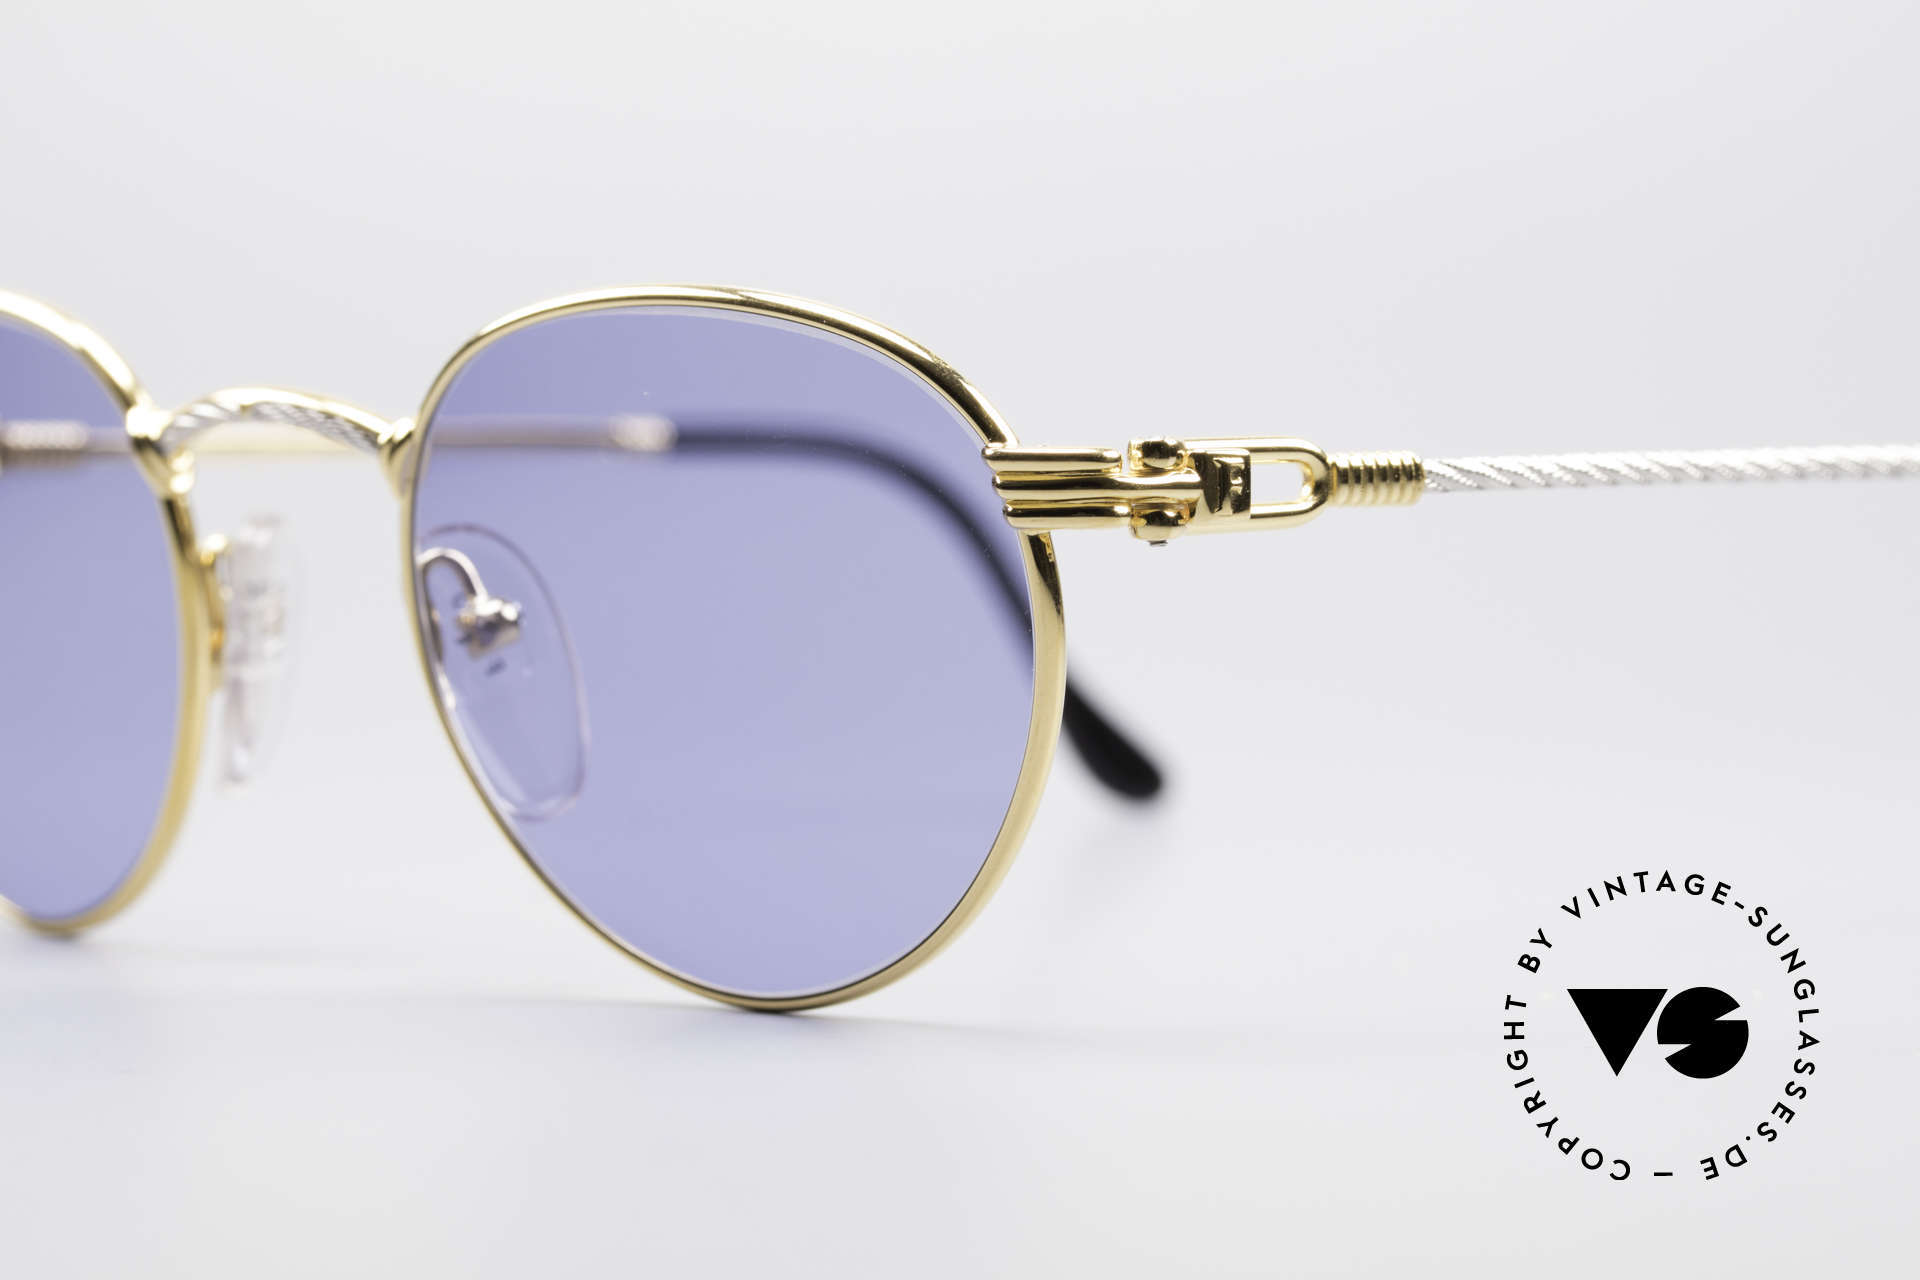 Fred Ouragan Luxury Panto Sunglasses, temples and bridge are twisted like a hawser; unique, Made for Men